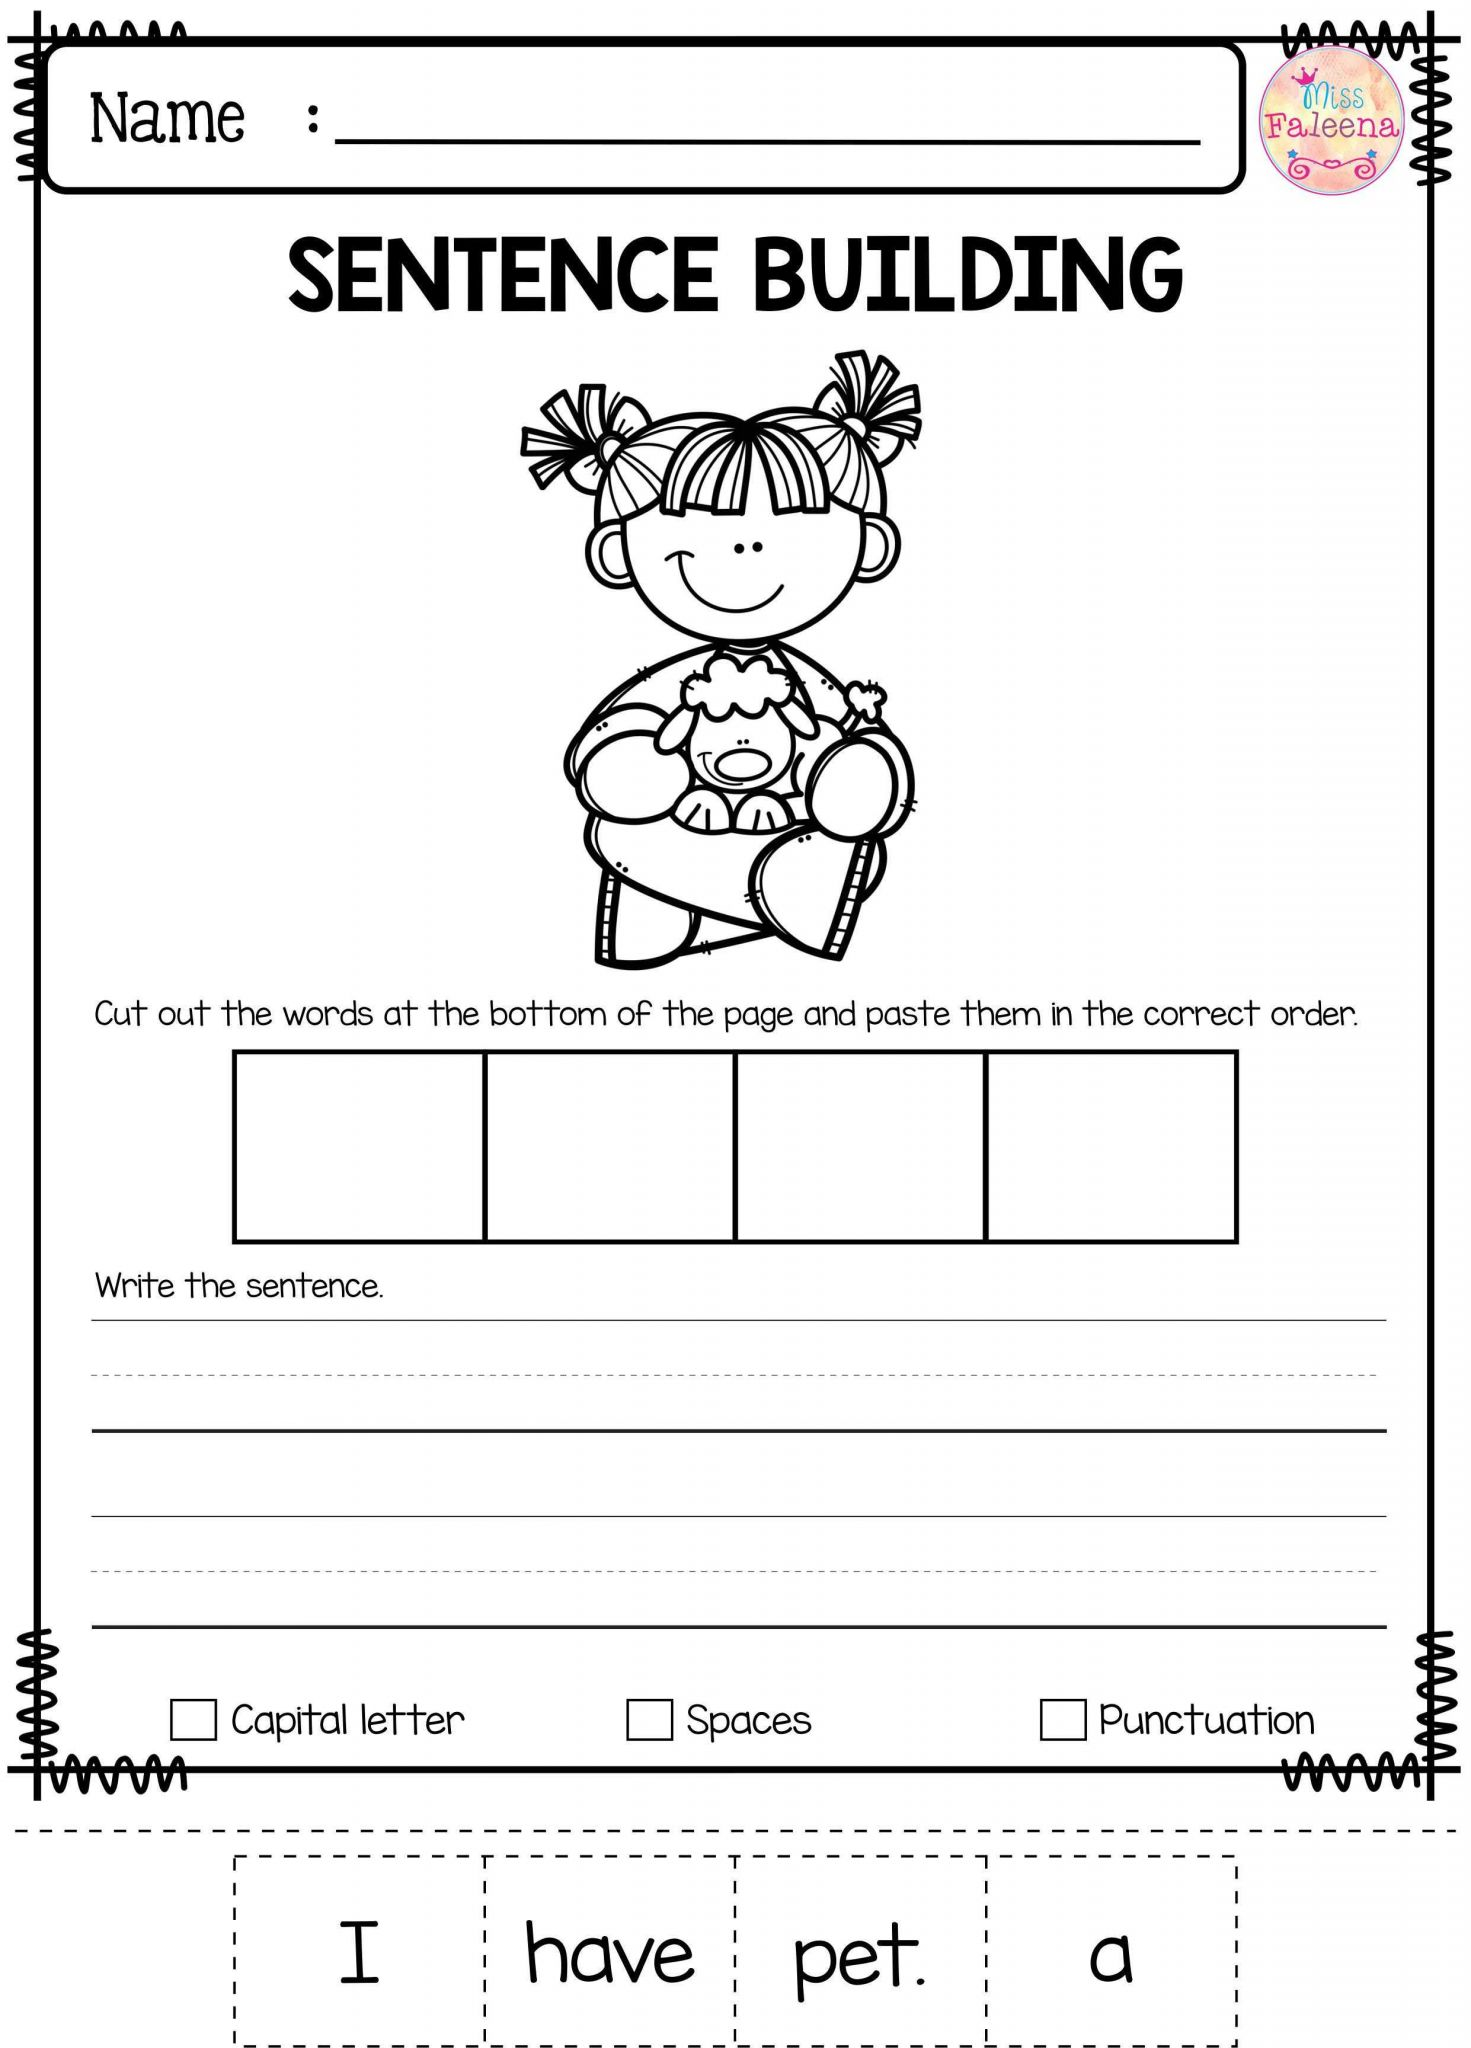 Writing Sentences Worksheets for 1st Grade and Free Sentence Building Has 10 Pages Of Sentence Building